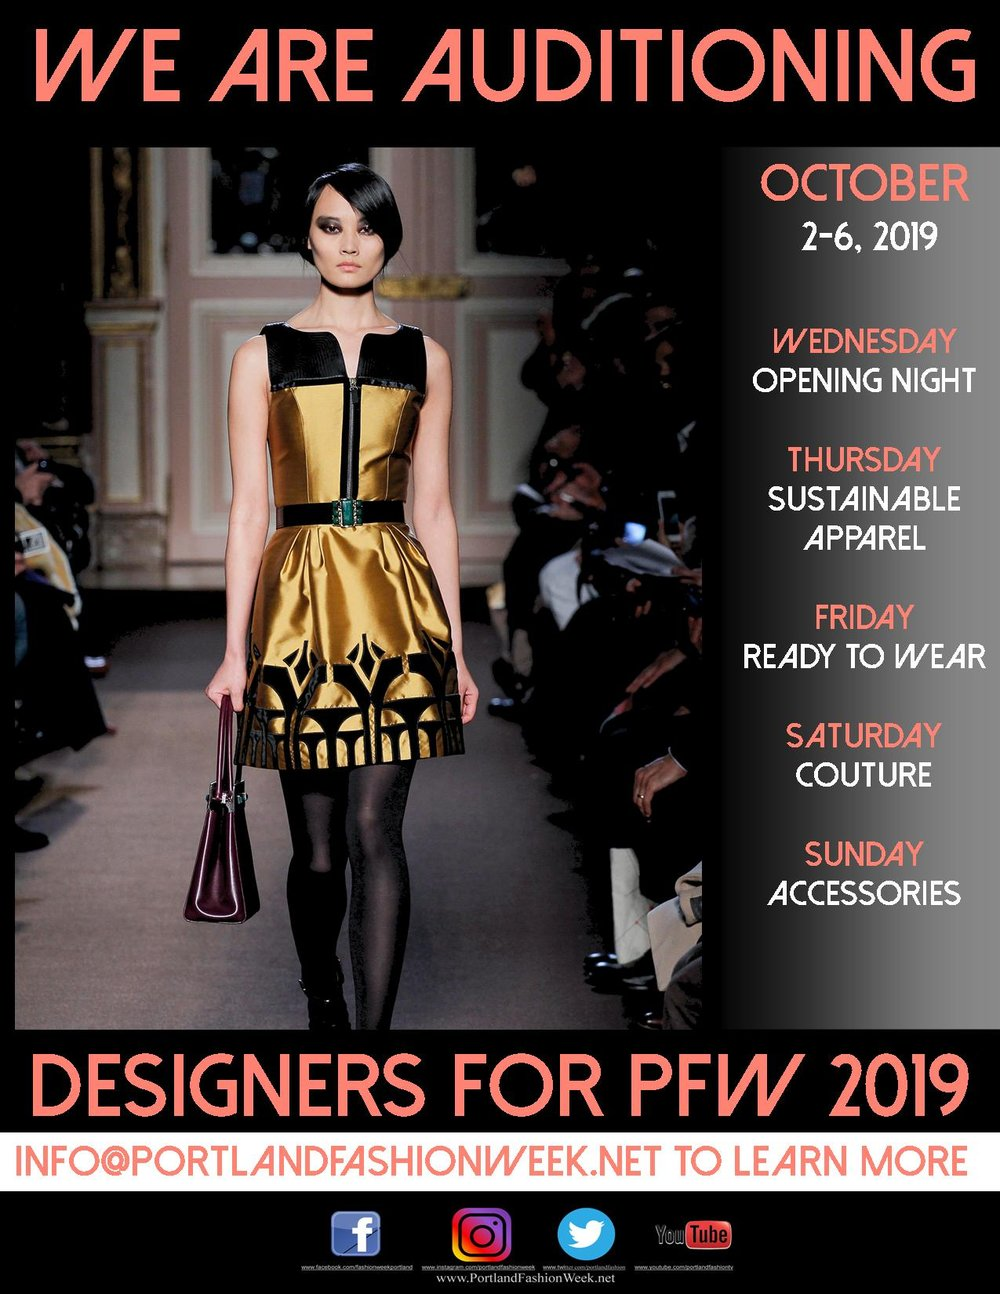 Portland Fashion Week 2019 - Our venue has been chosen, dates selected, and now it begins! The most sustainable and eco-chic fashion week in the entire world has now opened our Portland Fashion Week 2019 Designer Roster and is seeking participating fashion and accessory designers in the categories and days mentioned at left.To inquire more about what the Council of Fashion Designers of America have called the ''new business model and template for fashion weeks'' or to become a participating designer we encourage you to contact us at: Designer@PortlandFashionWeek.net for your chance to possibly become part of the world's most sustainable fashion week.